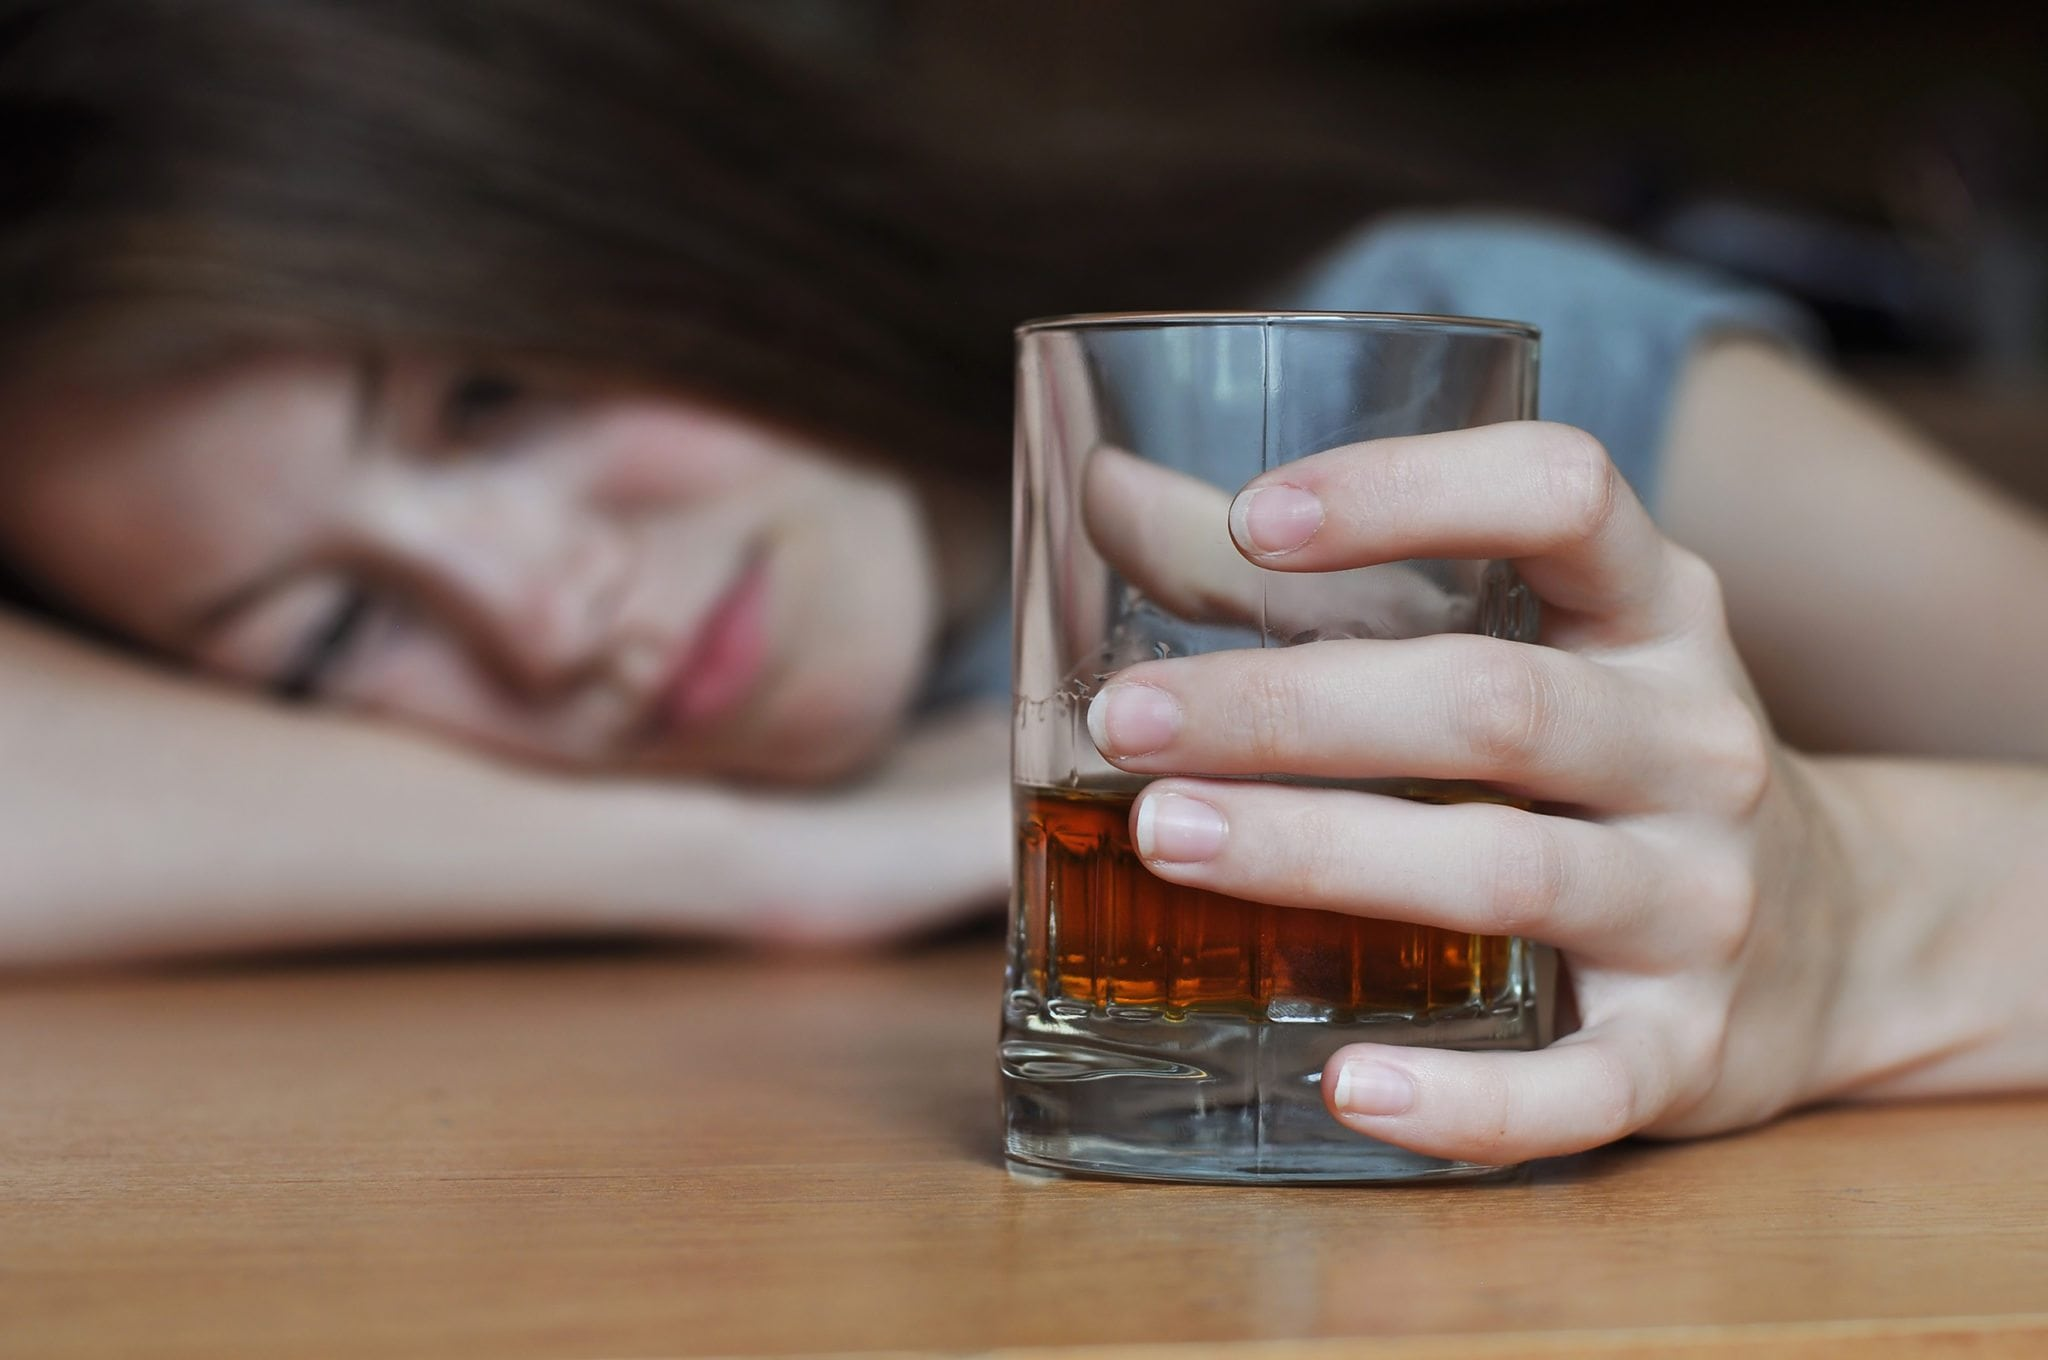 Side effects of alcohol on the skin